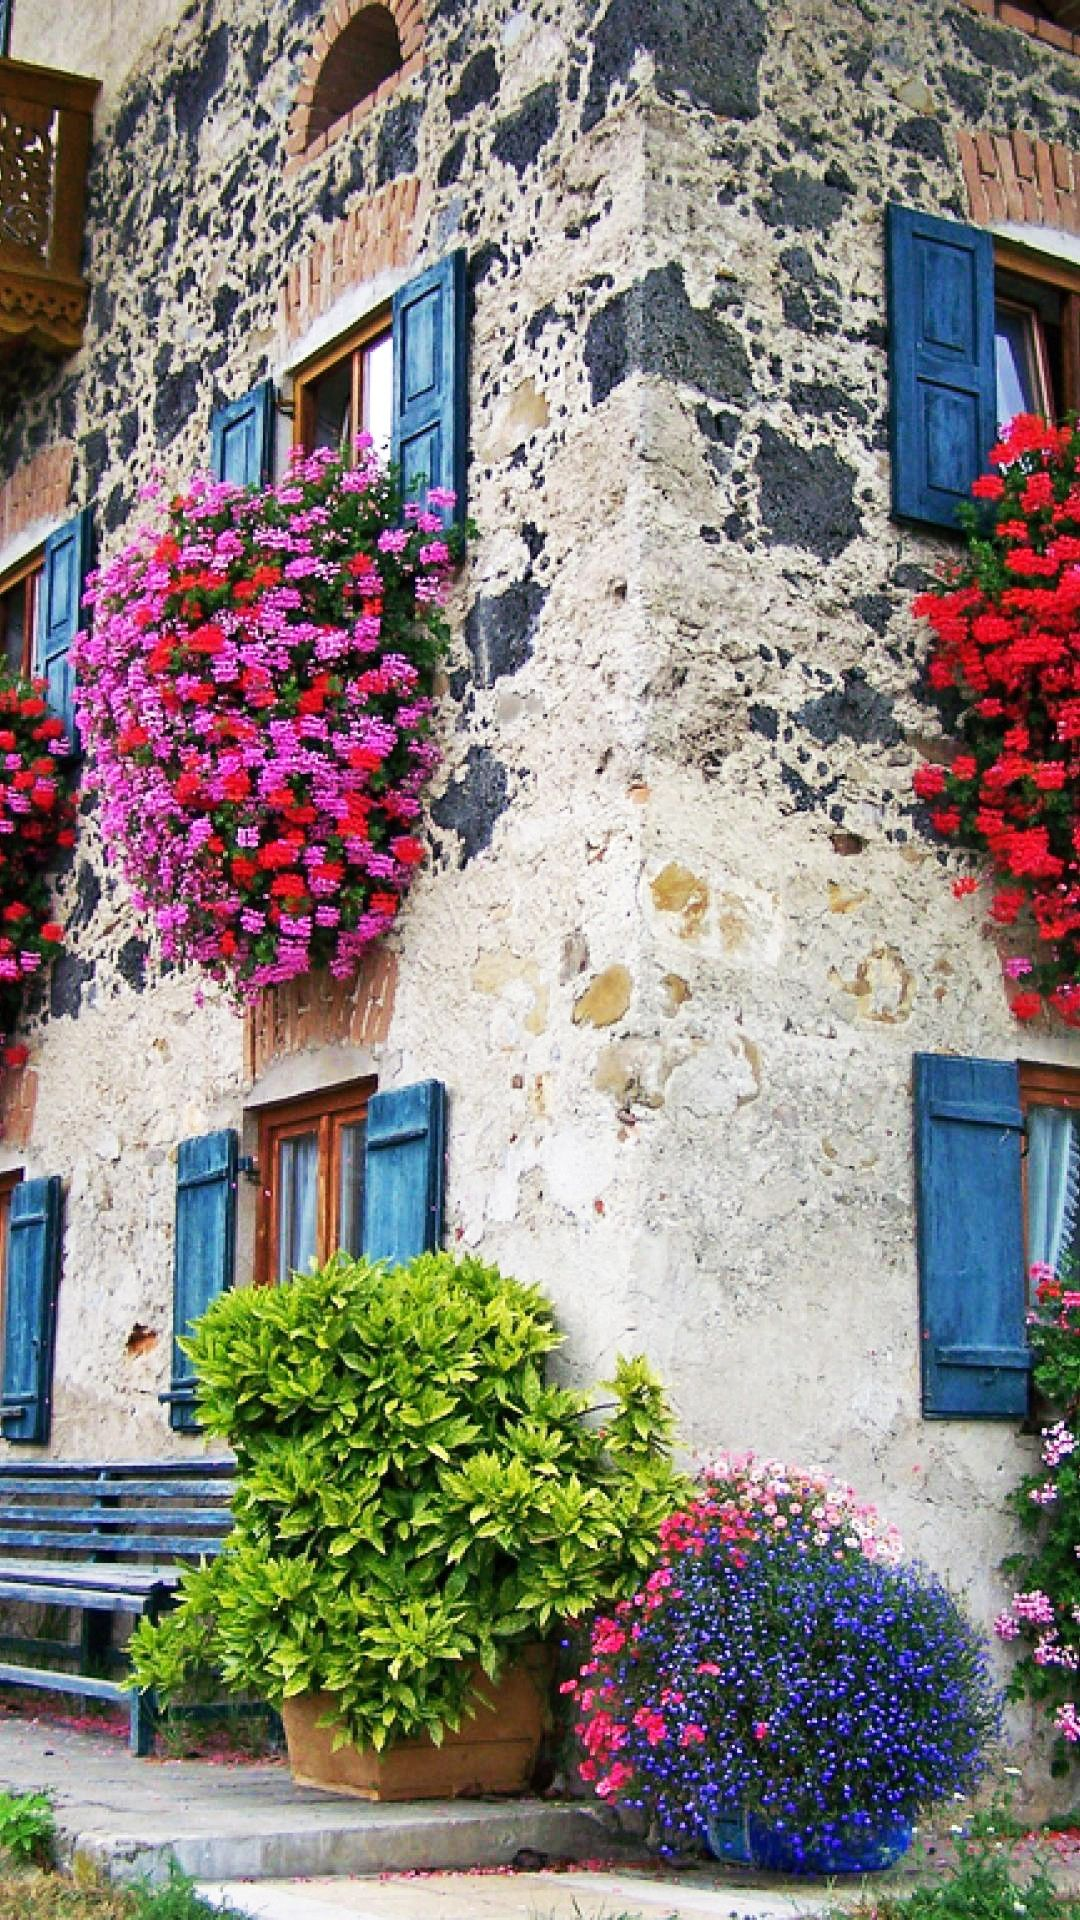 House With Colorful Flowers at Windows Smartphone